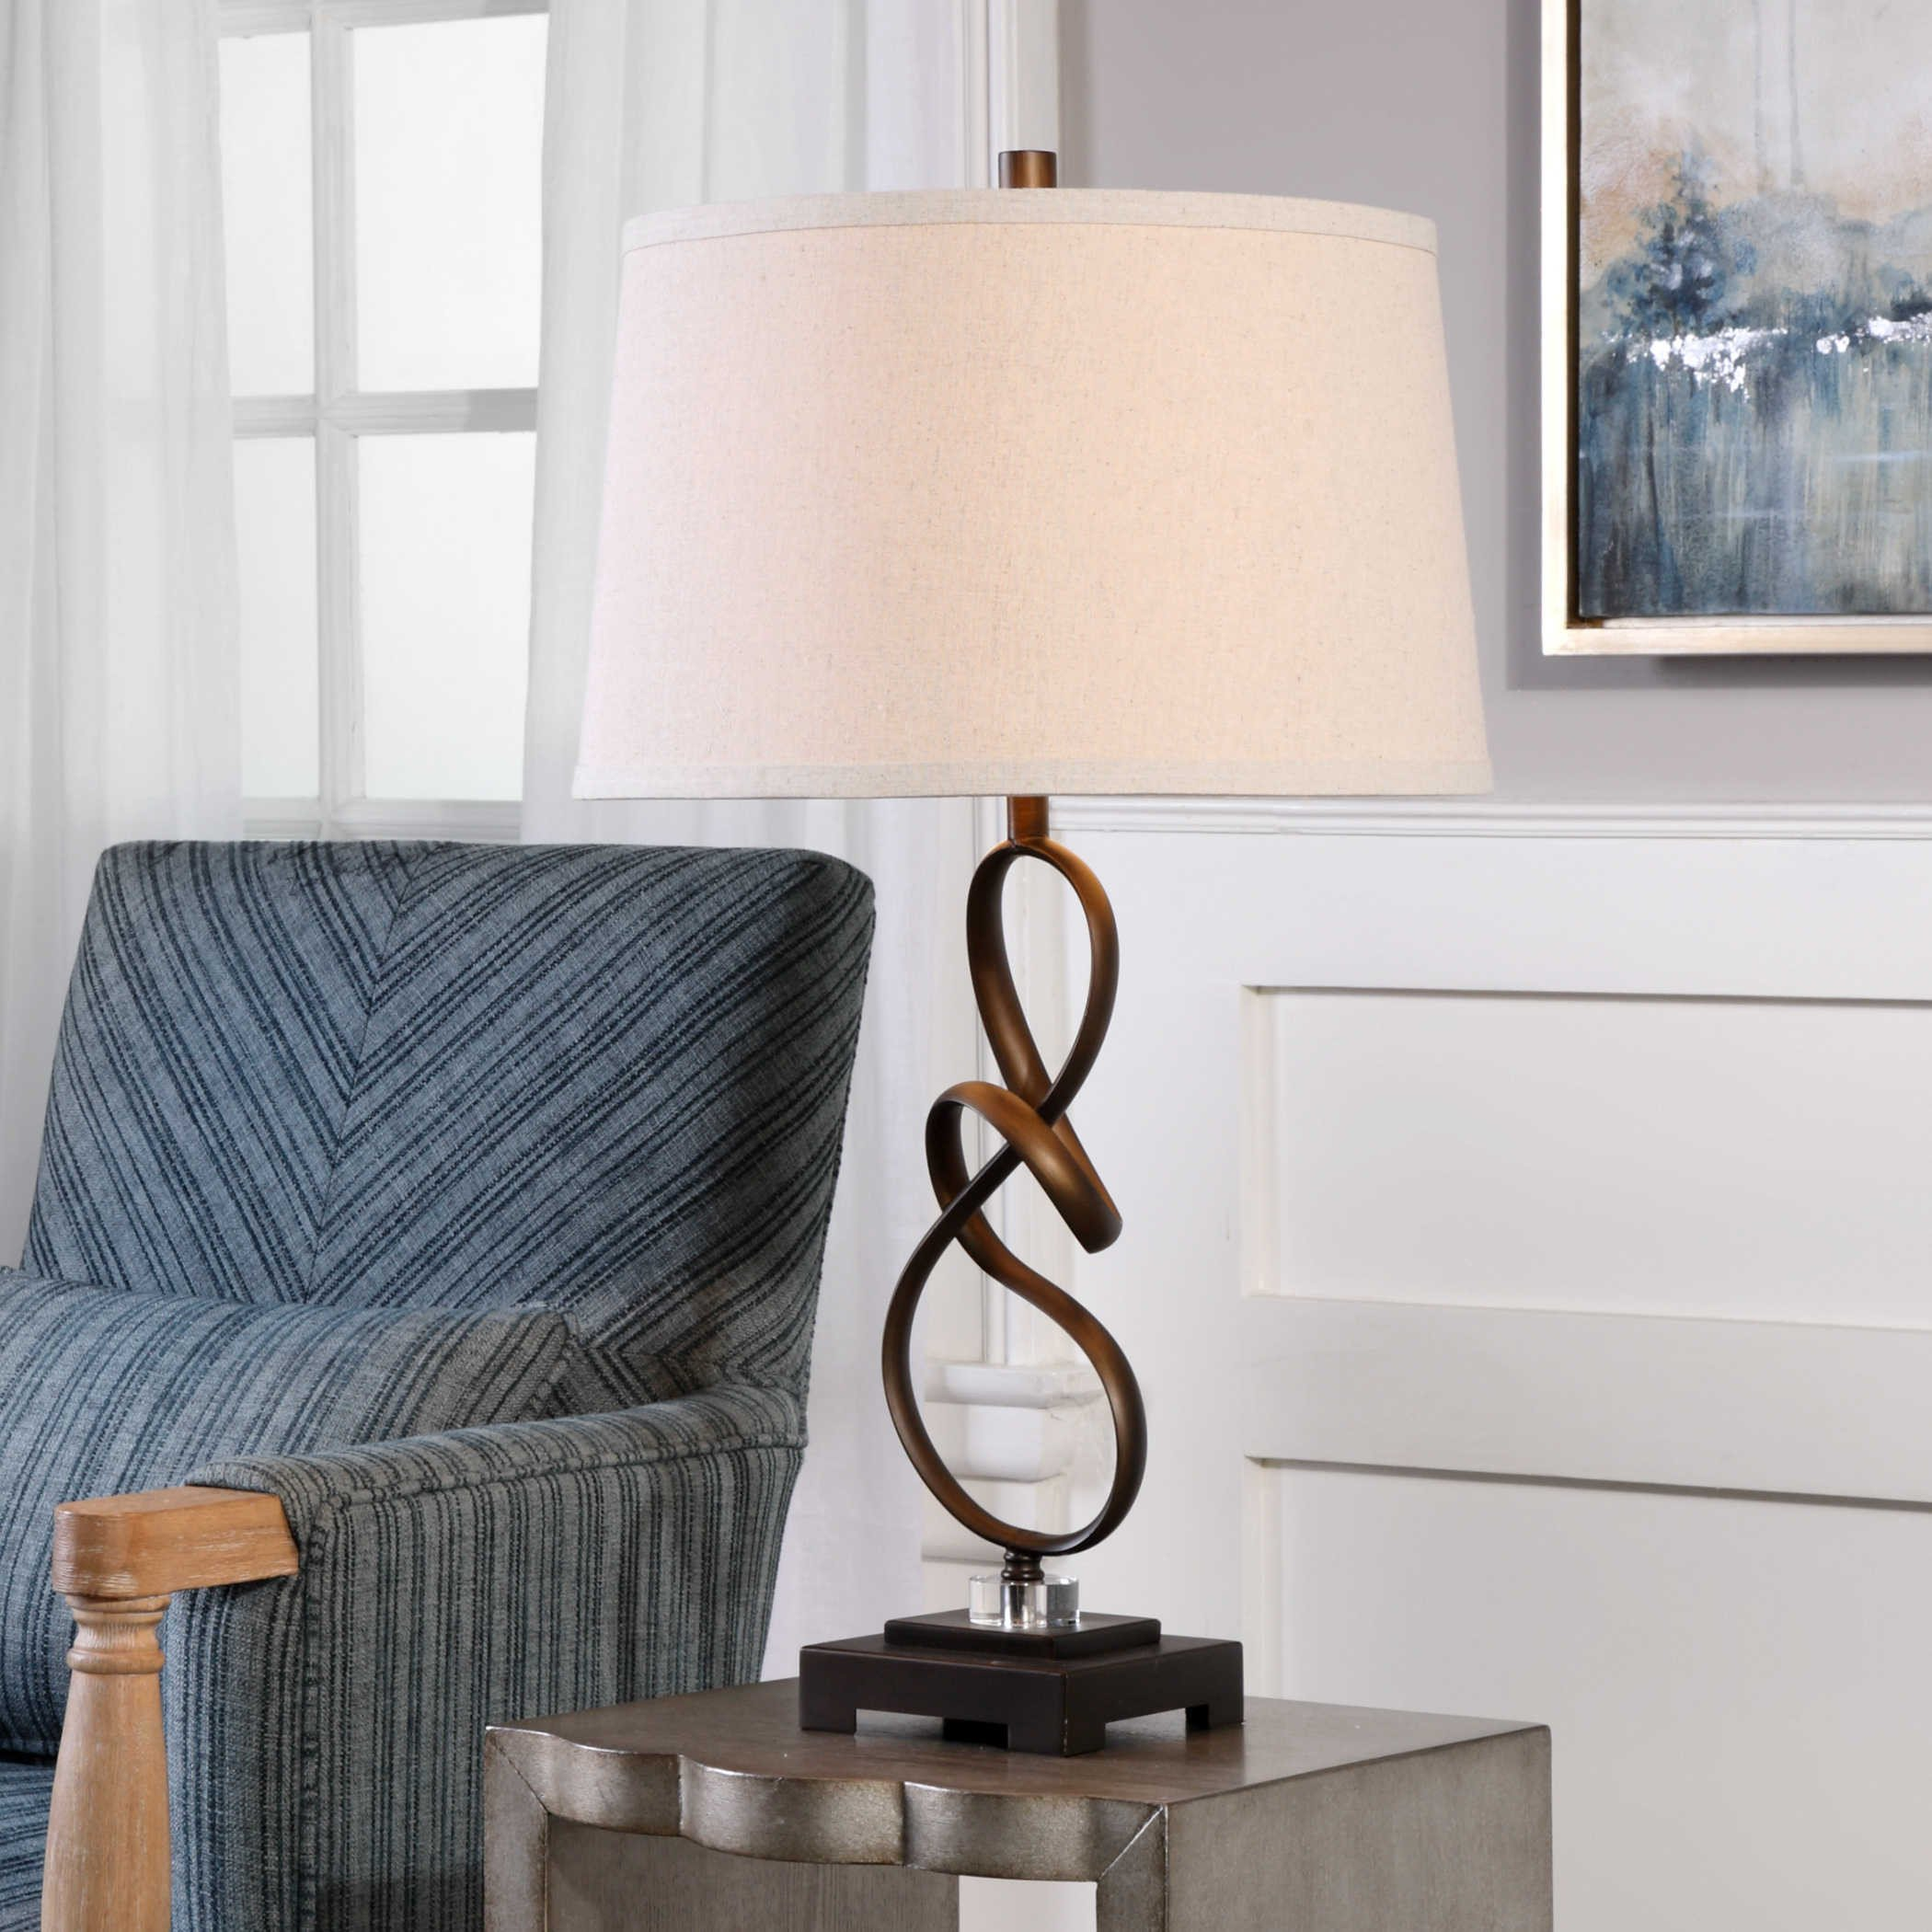 Floor Lamp for Bedroom Elegant Tenley Table Lamp